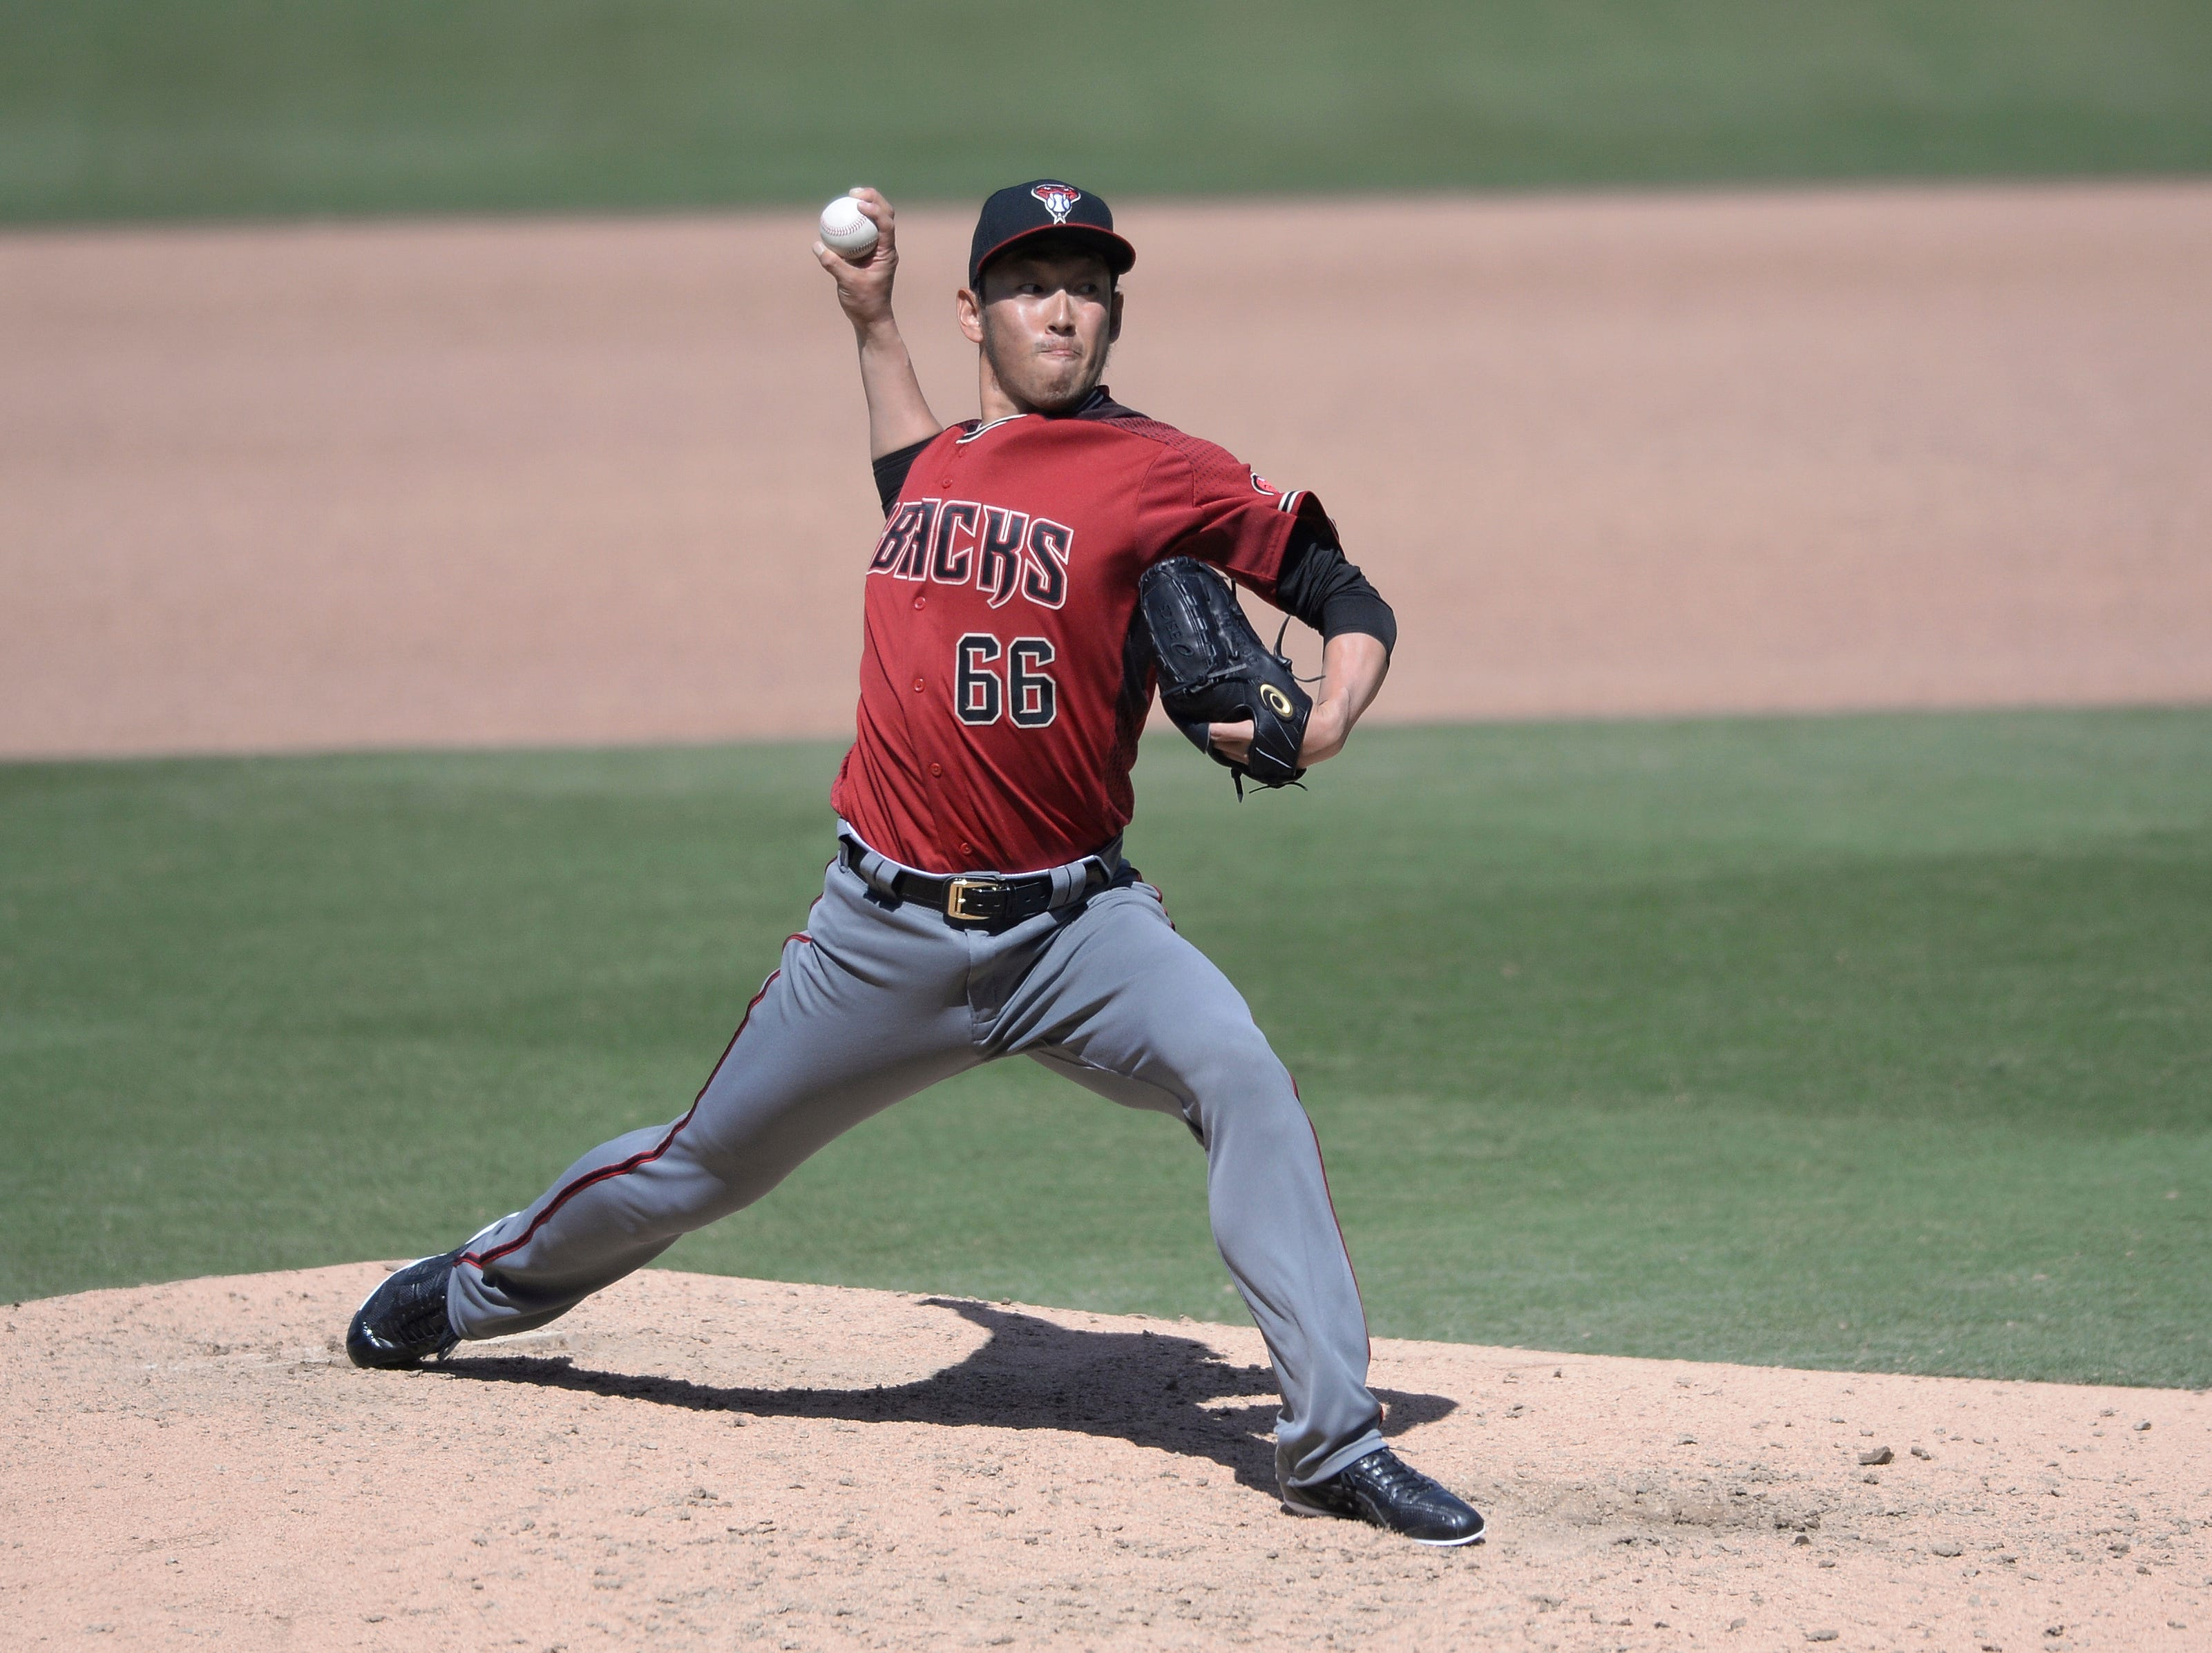 Arizona Diamondbacks relief pitcher Yoshihisa Hirano, of Japan, works against a San Diego Padres batter during the sixth inning of a baseball game Wednesday, April 3, 2019, in San Diego. (AP Photo/Orlando Ramirez)